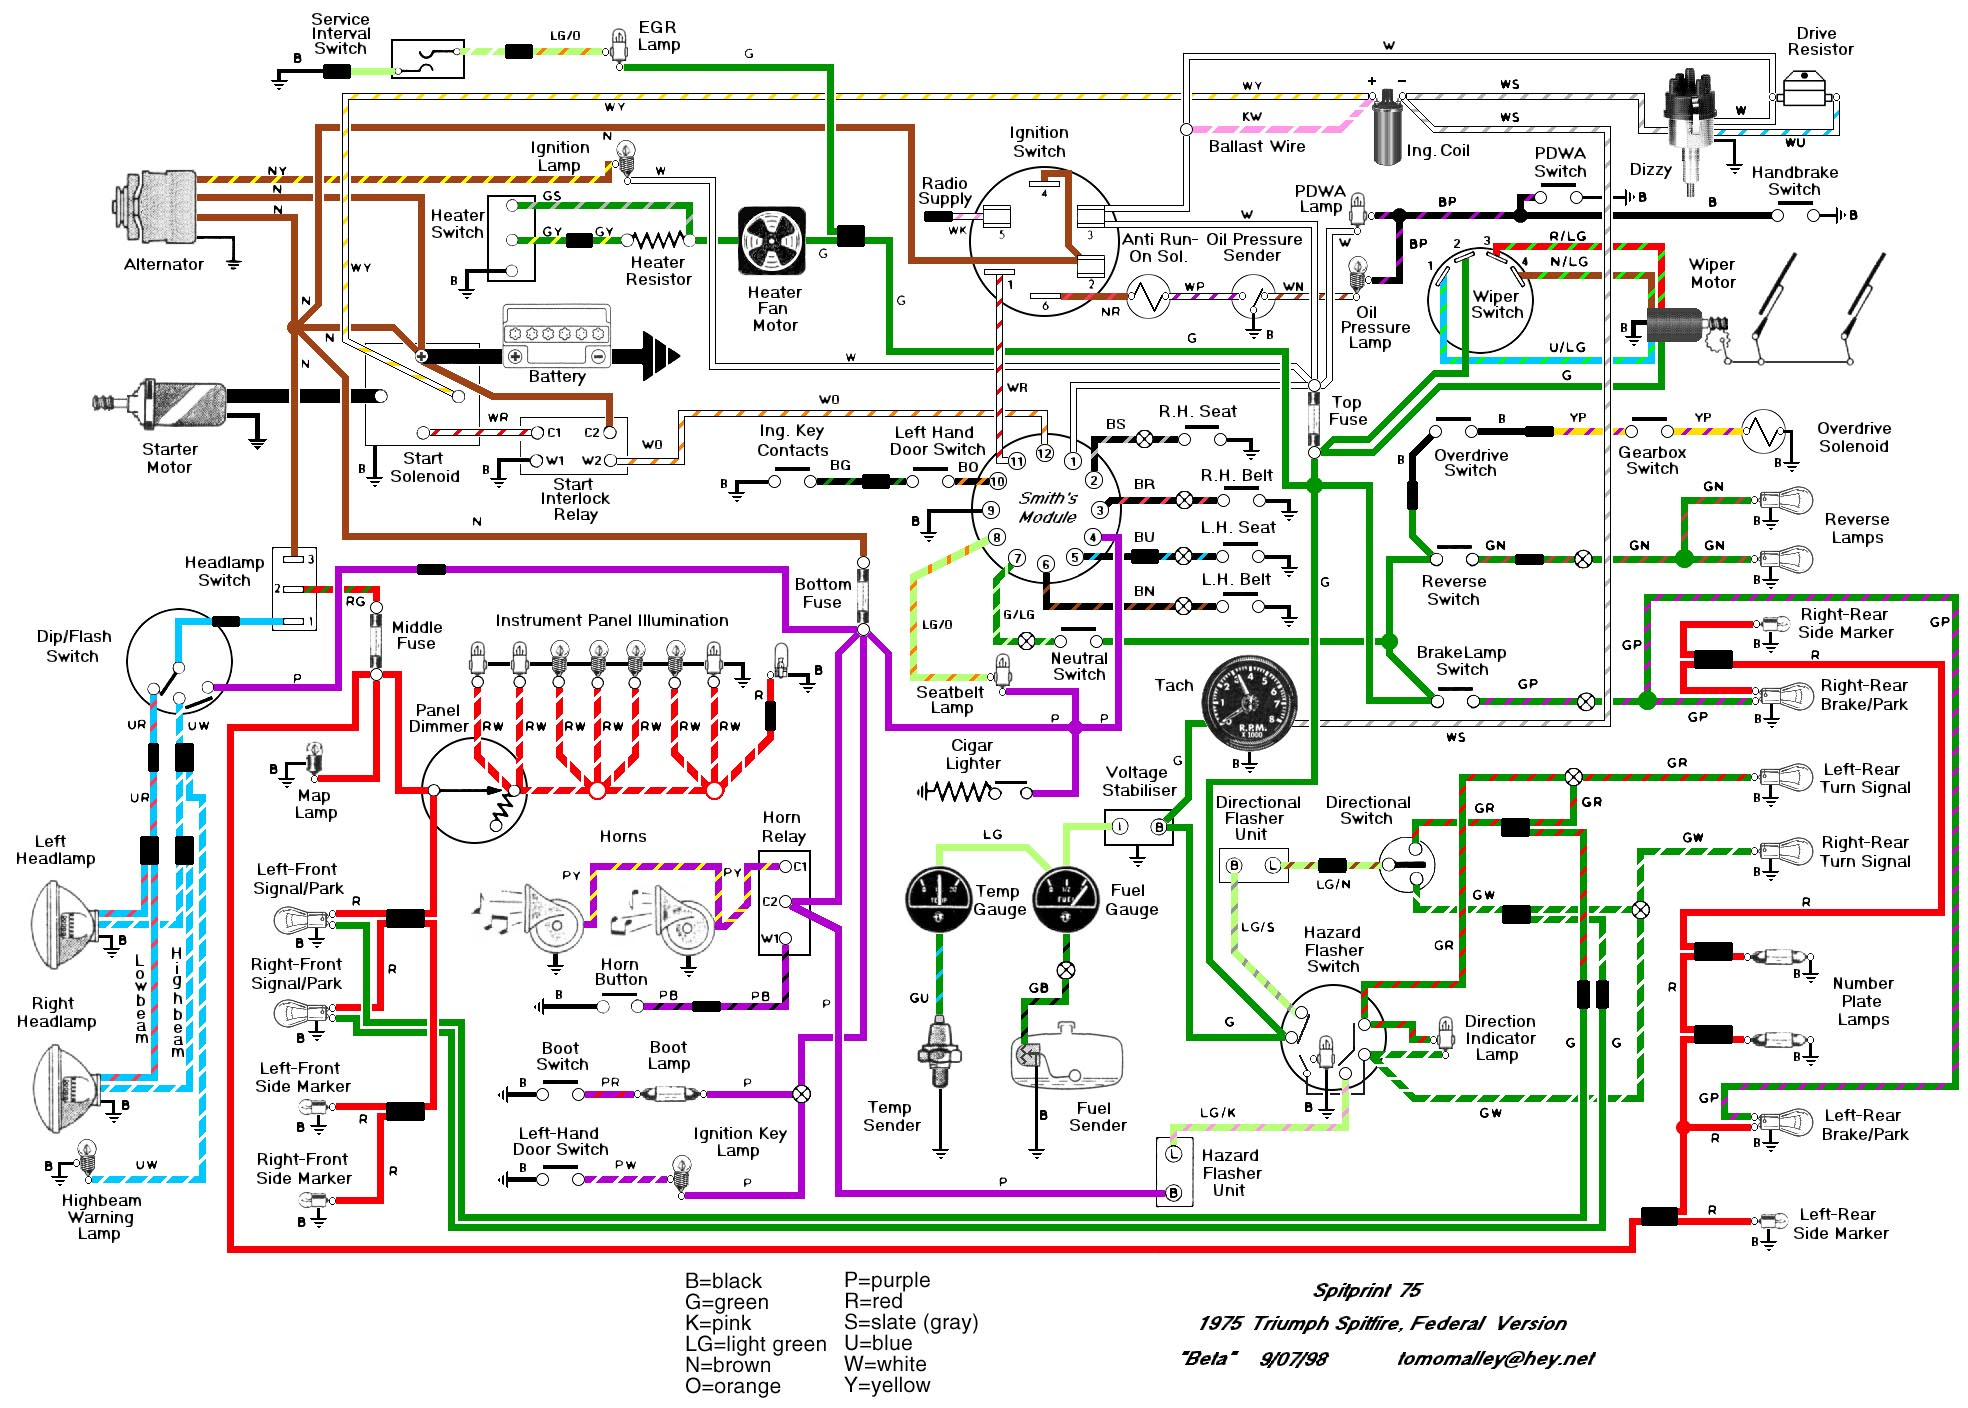 opel remote starter diagram Images Gallery. vehicle wiring diagram wiring  diagram schematics rh thyl co